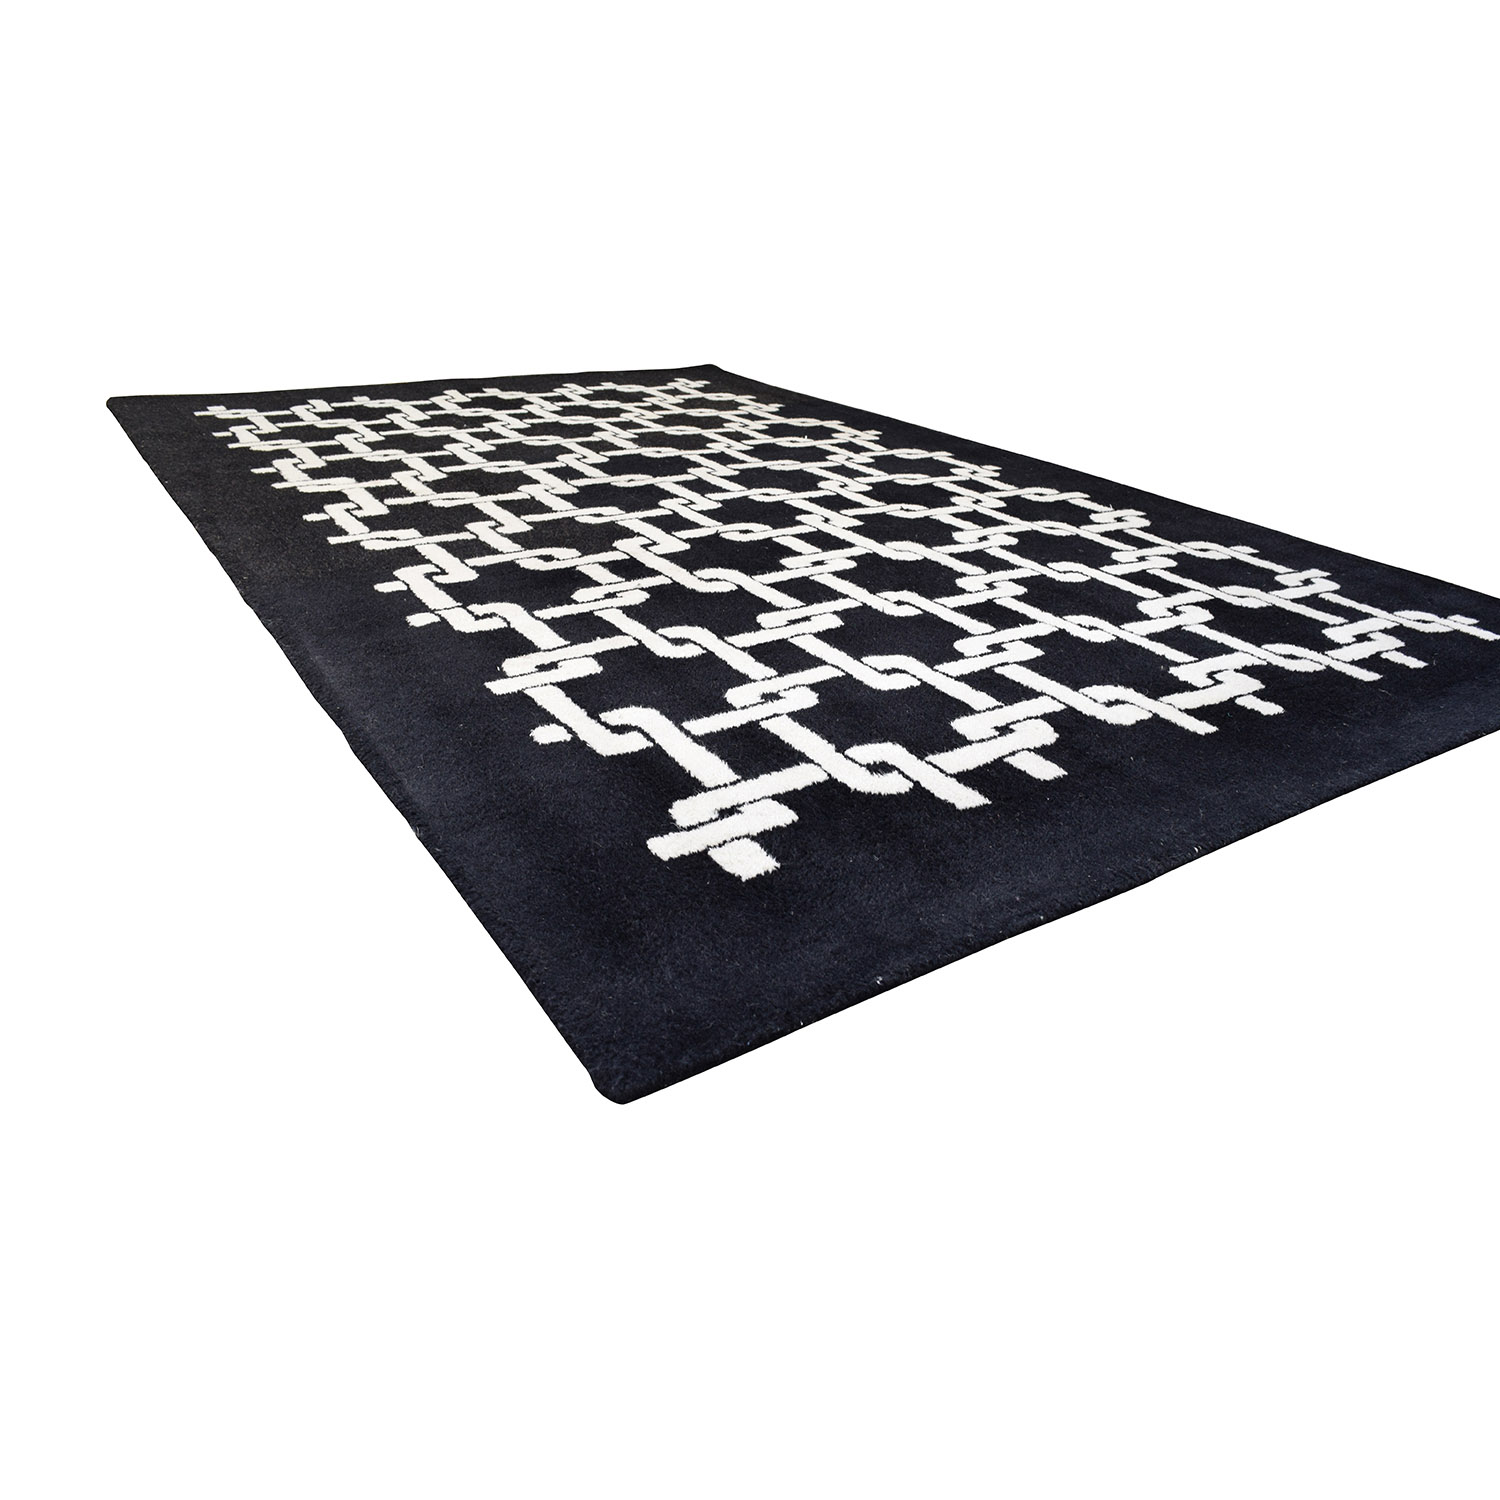 buy Black and White Geometric Patterned Rug